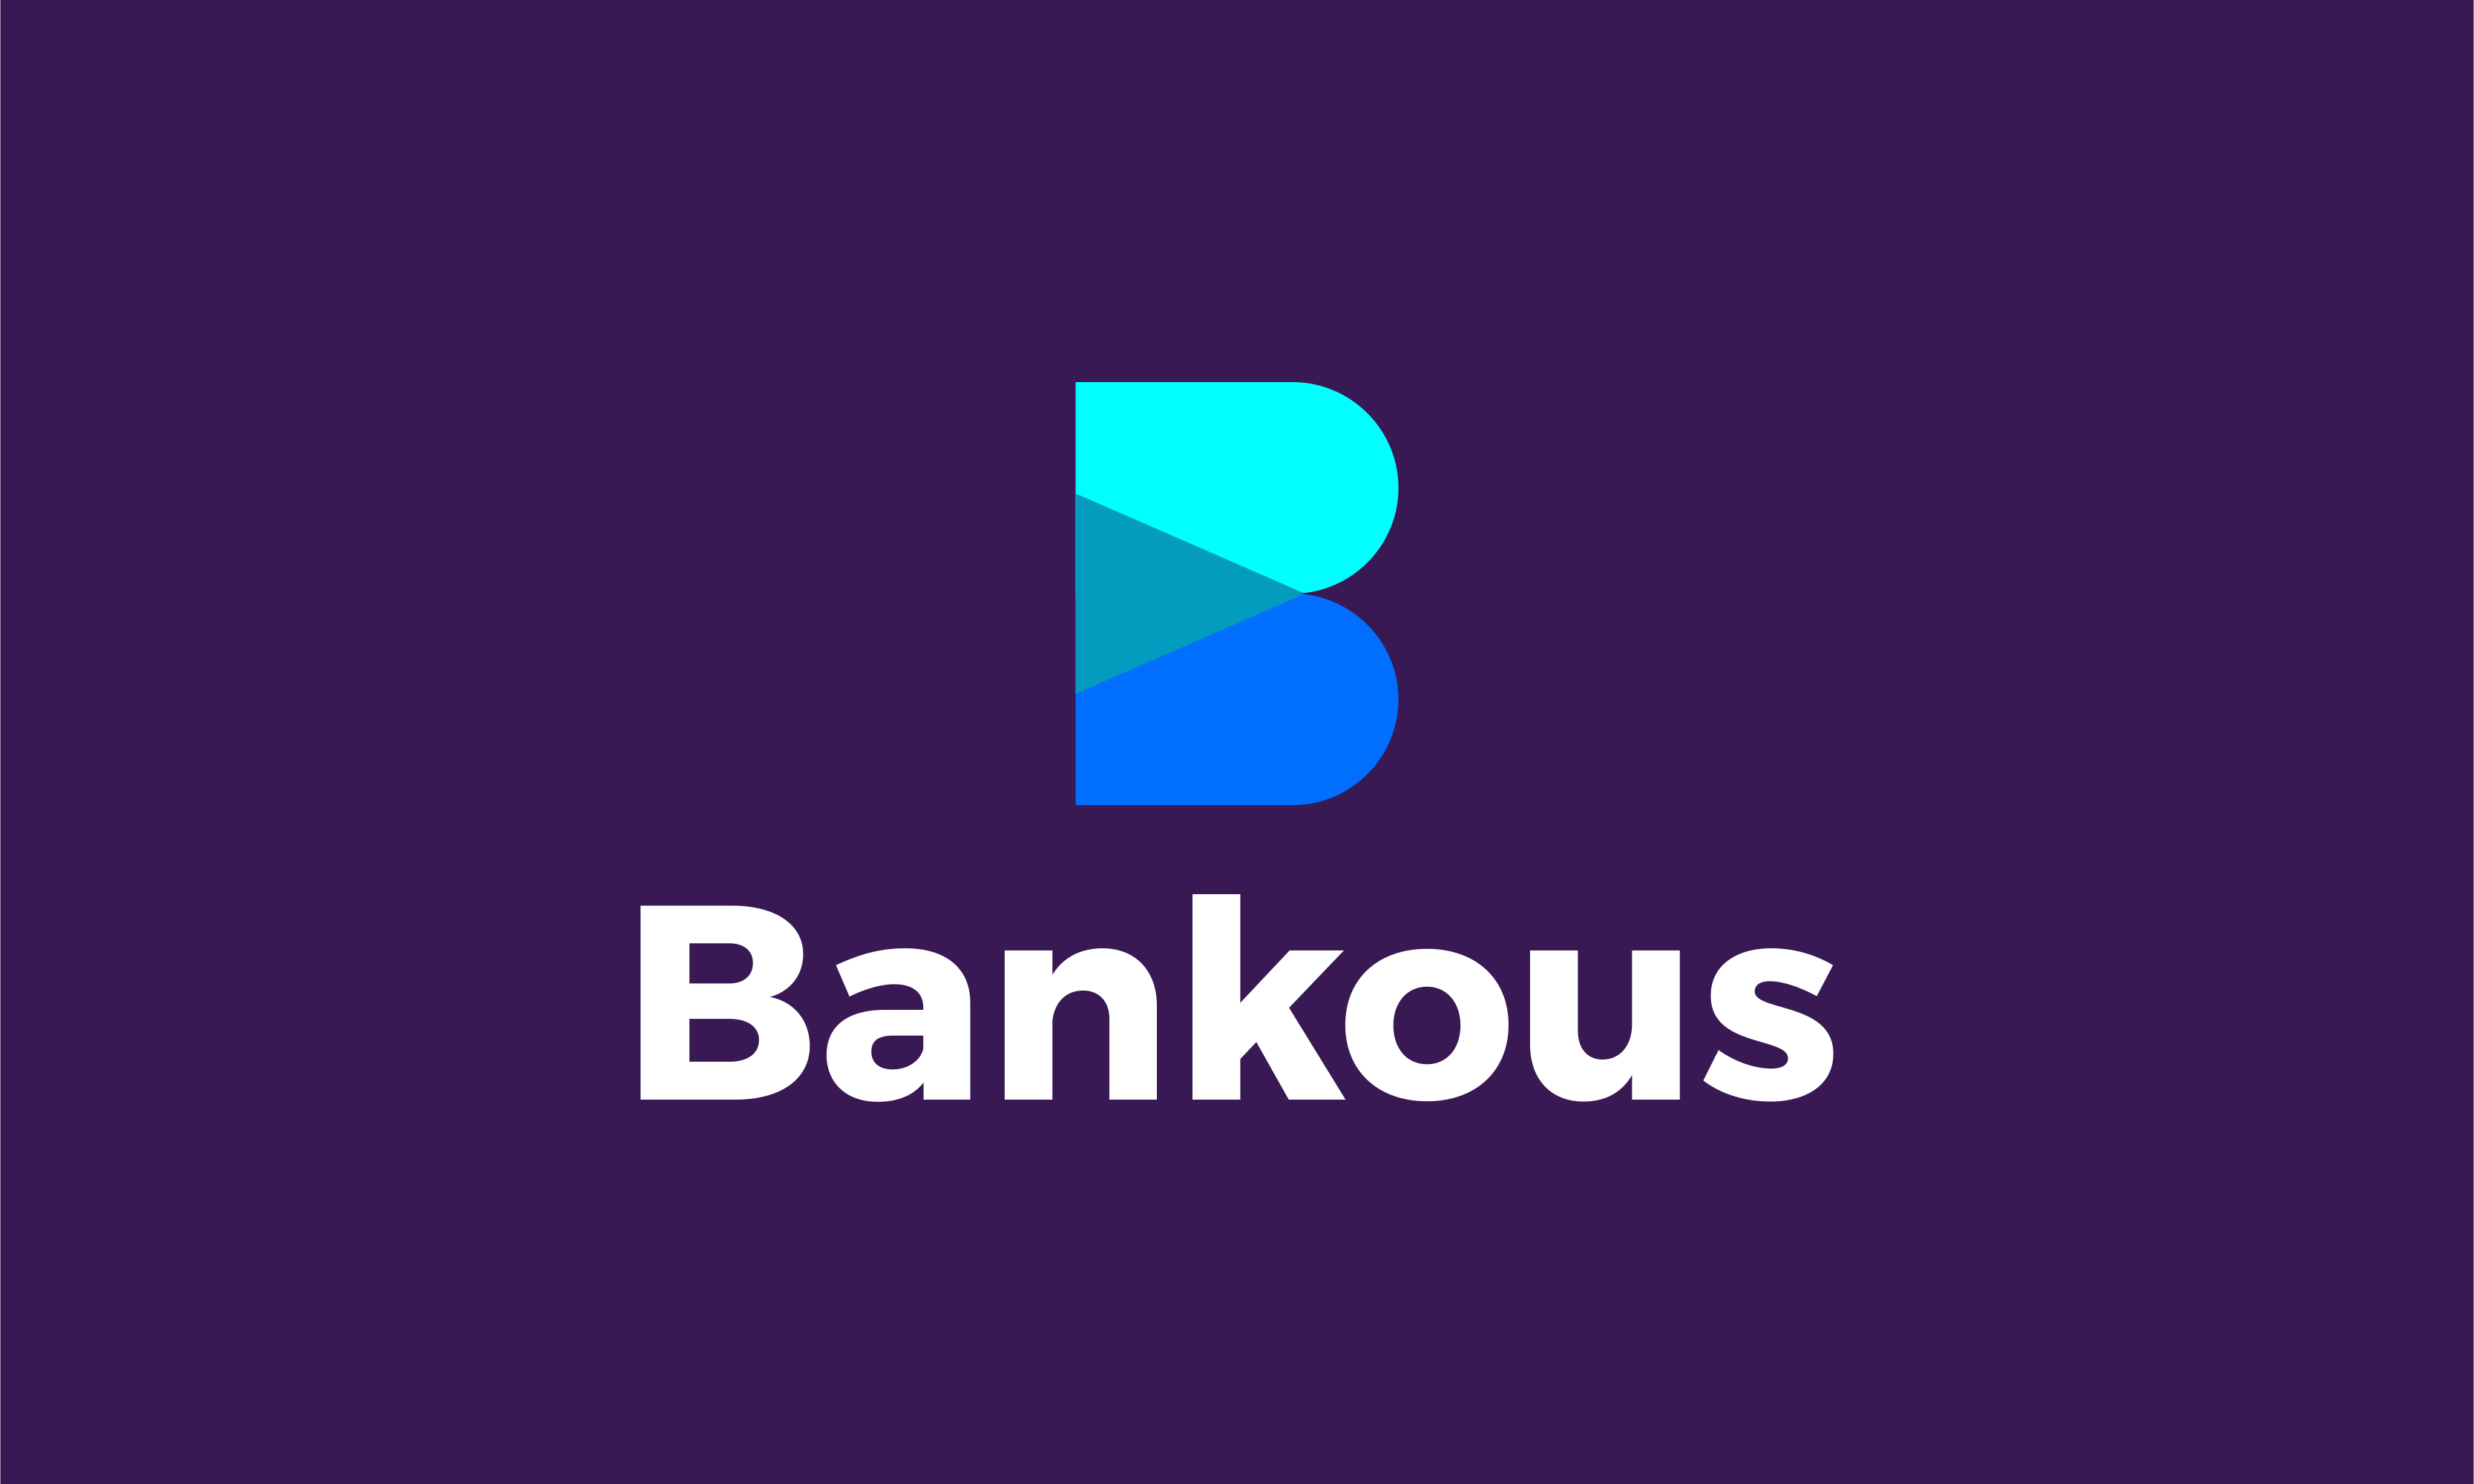 Bankous - Banking domain name for sale